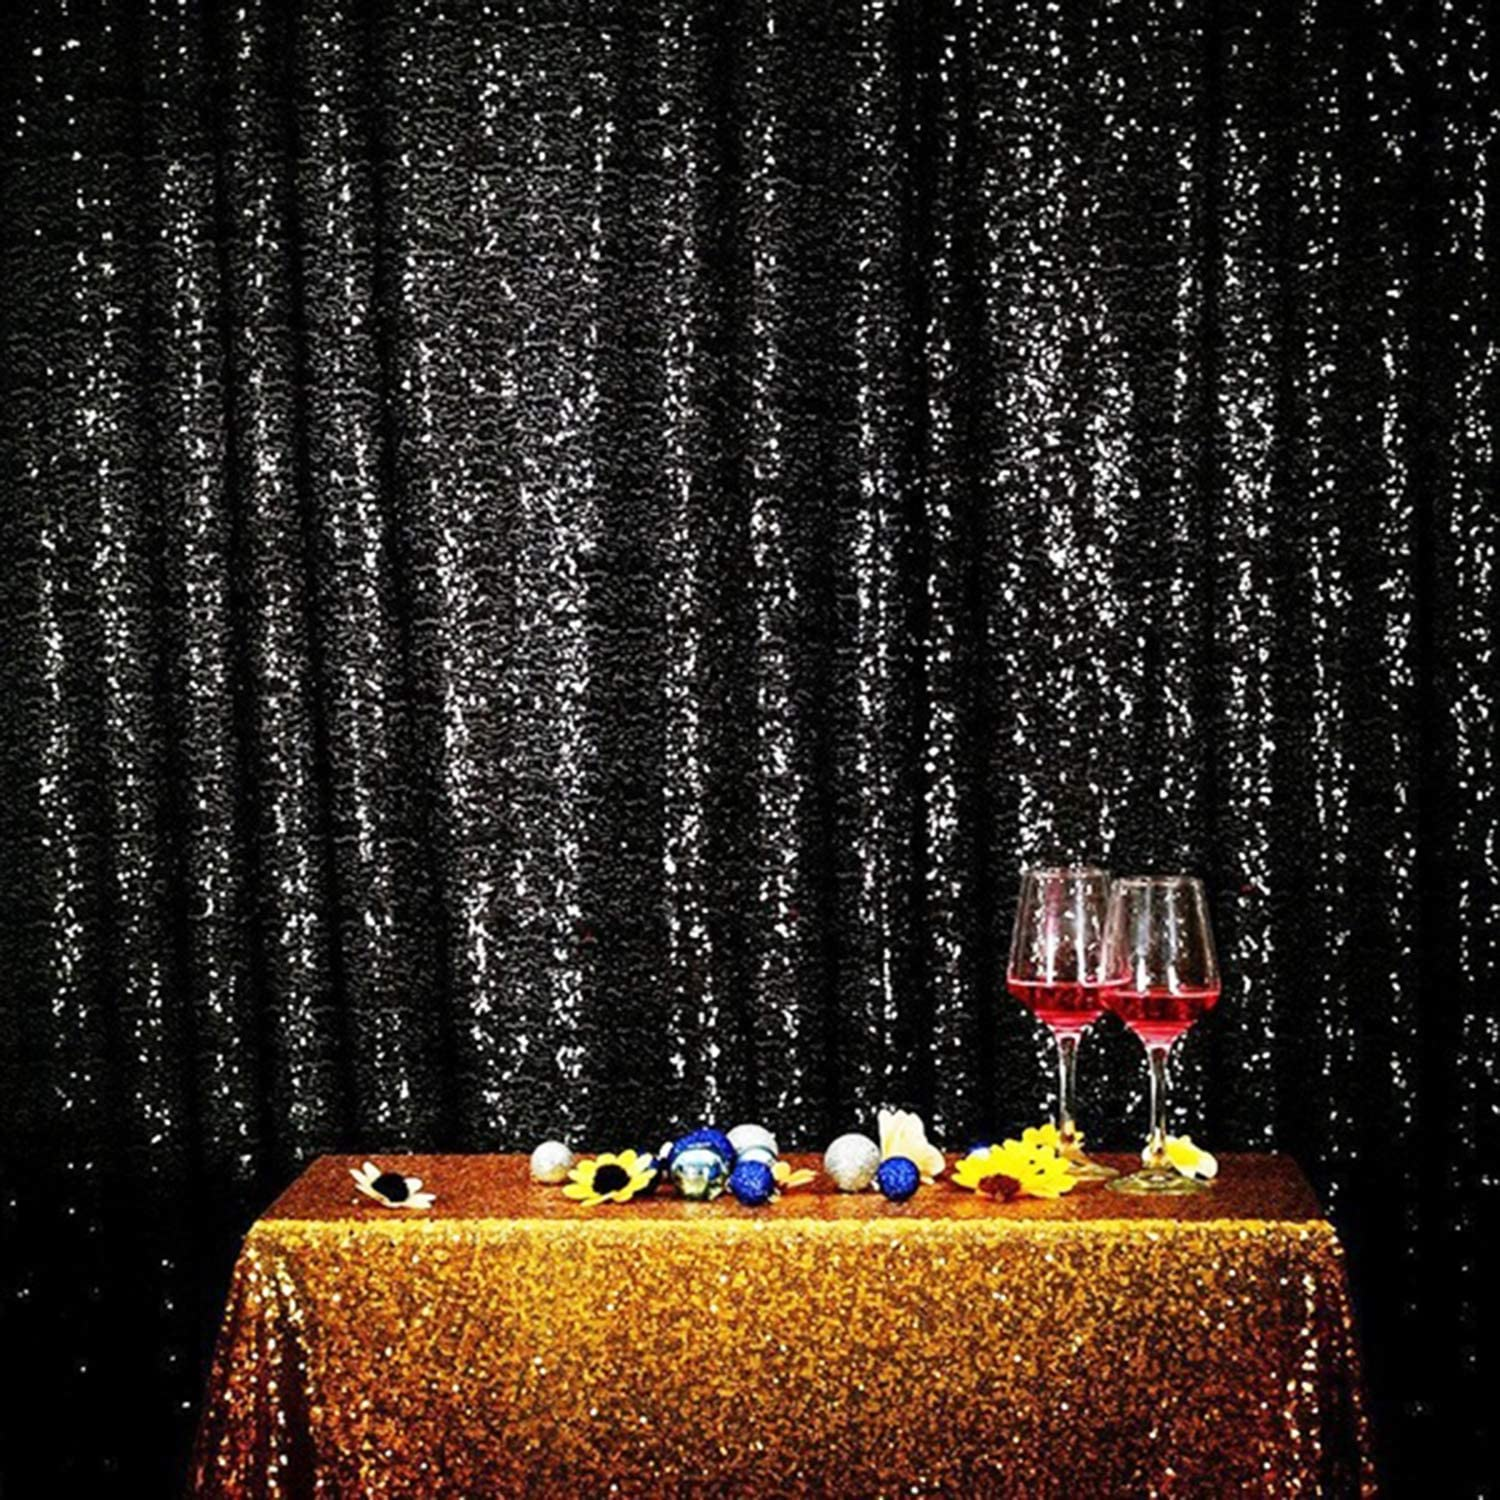 Sequin Backdrop Curtain 8ft X 4ft Sequin Photography Backdropwedding Photo Booth Backdrop Background Birthday Party Curtain Christmas Prom Backdrop Decoration Walmart Canada